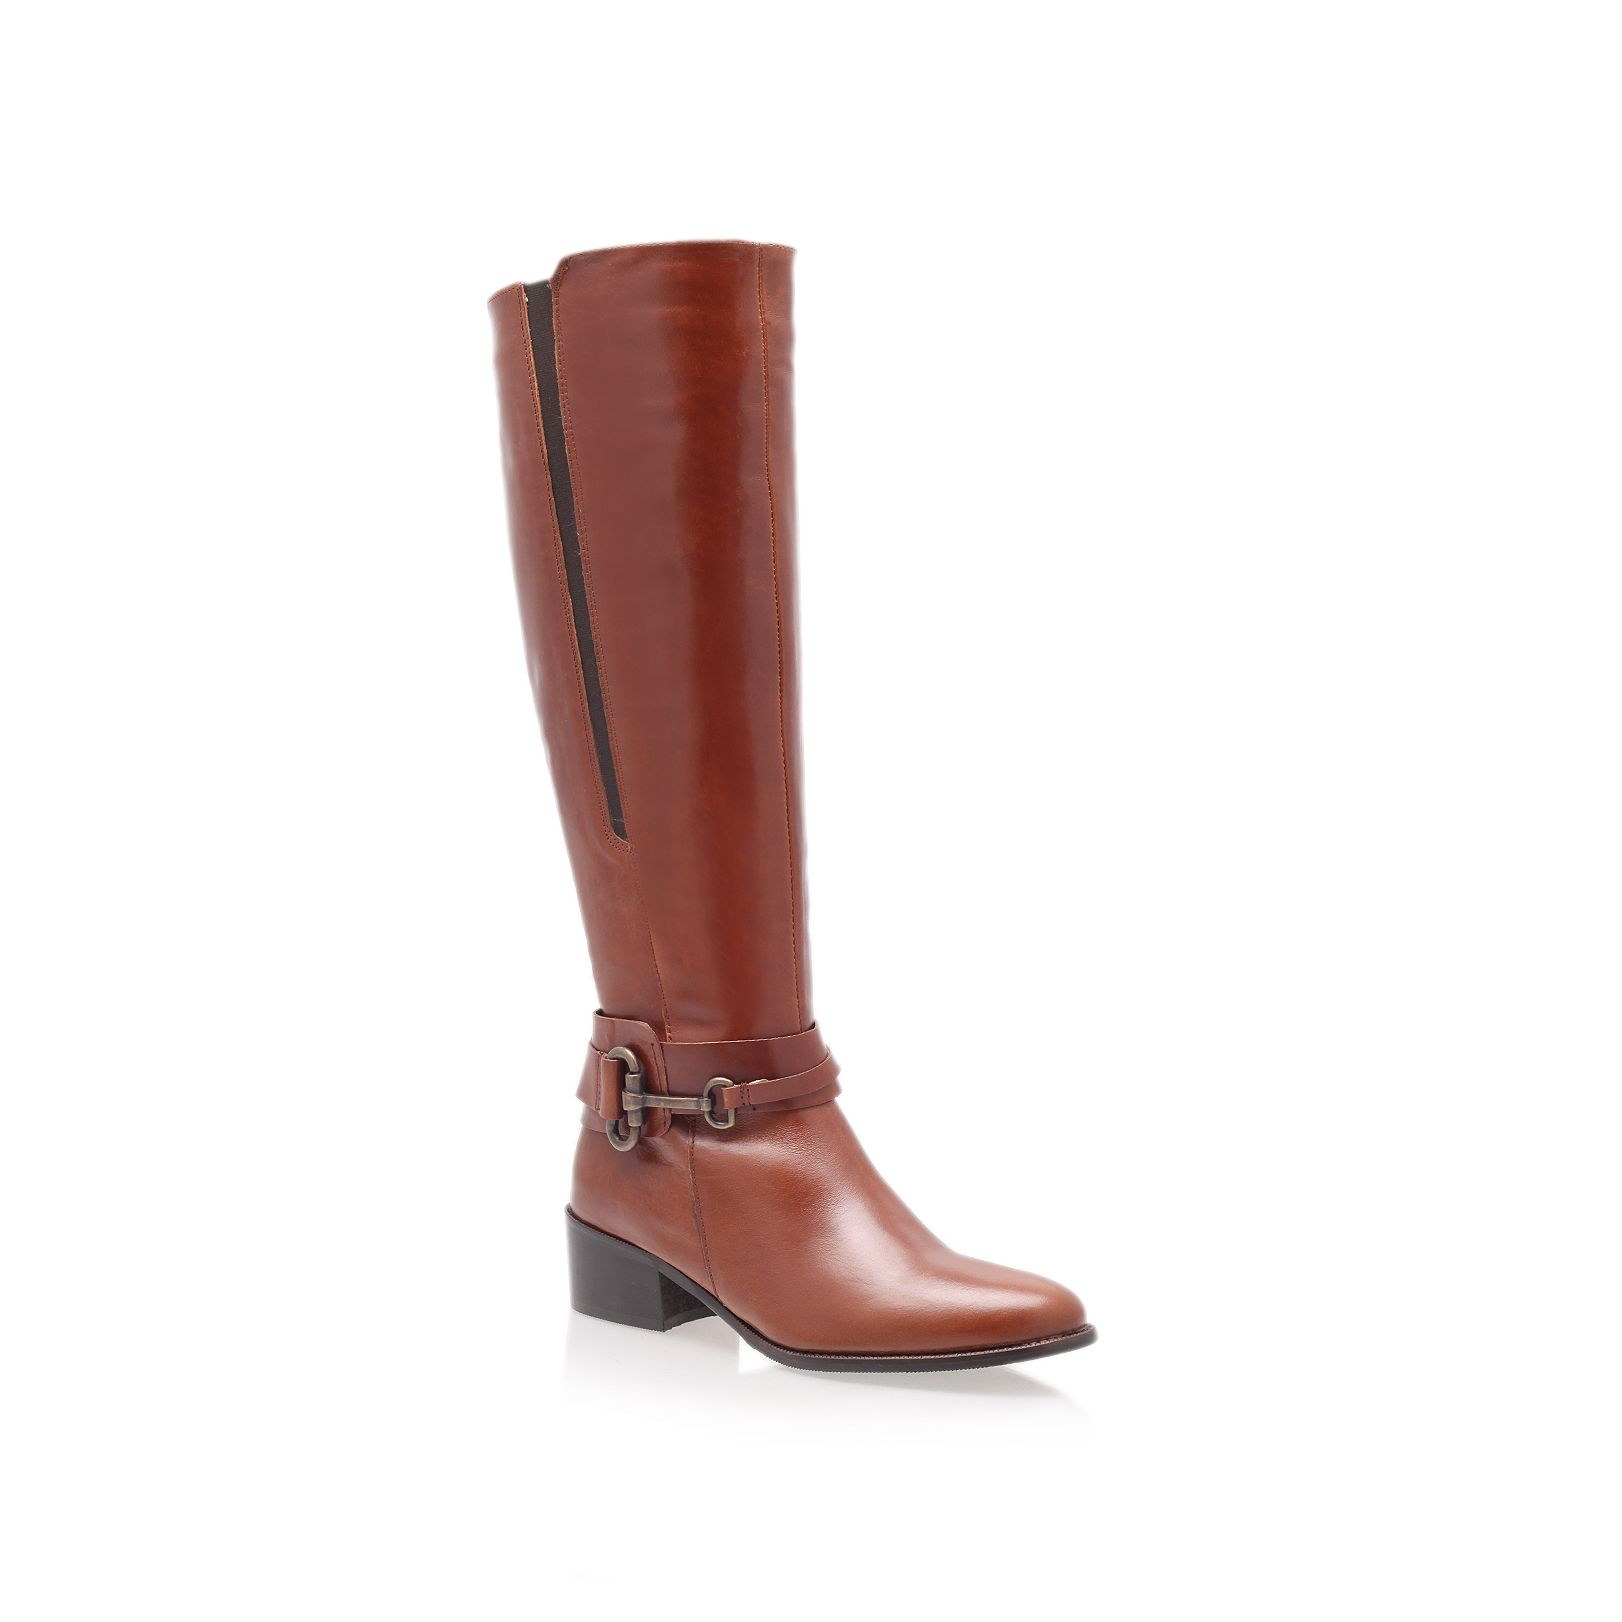 Carvela Kurt Geiger Willing Riding Boots In Brown | Lyst